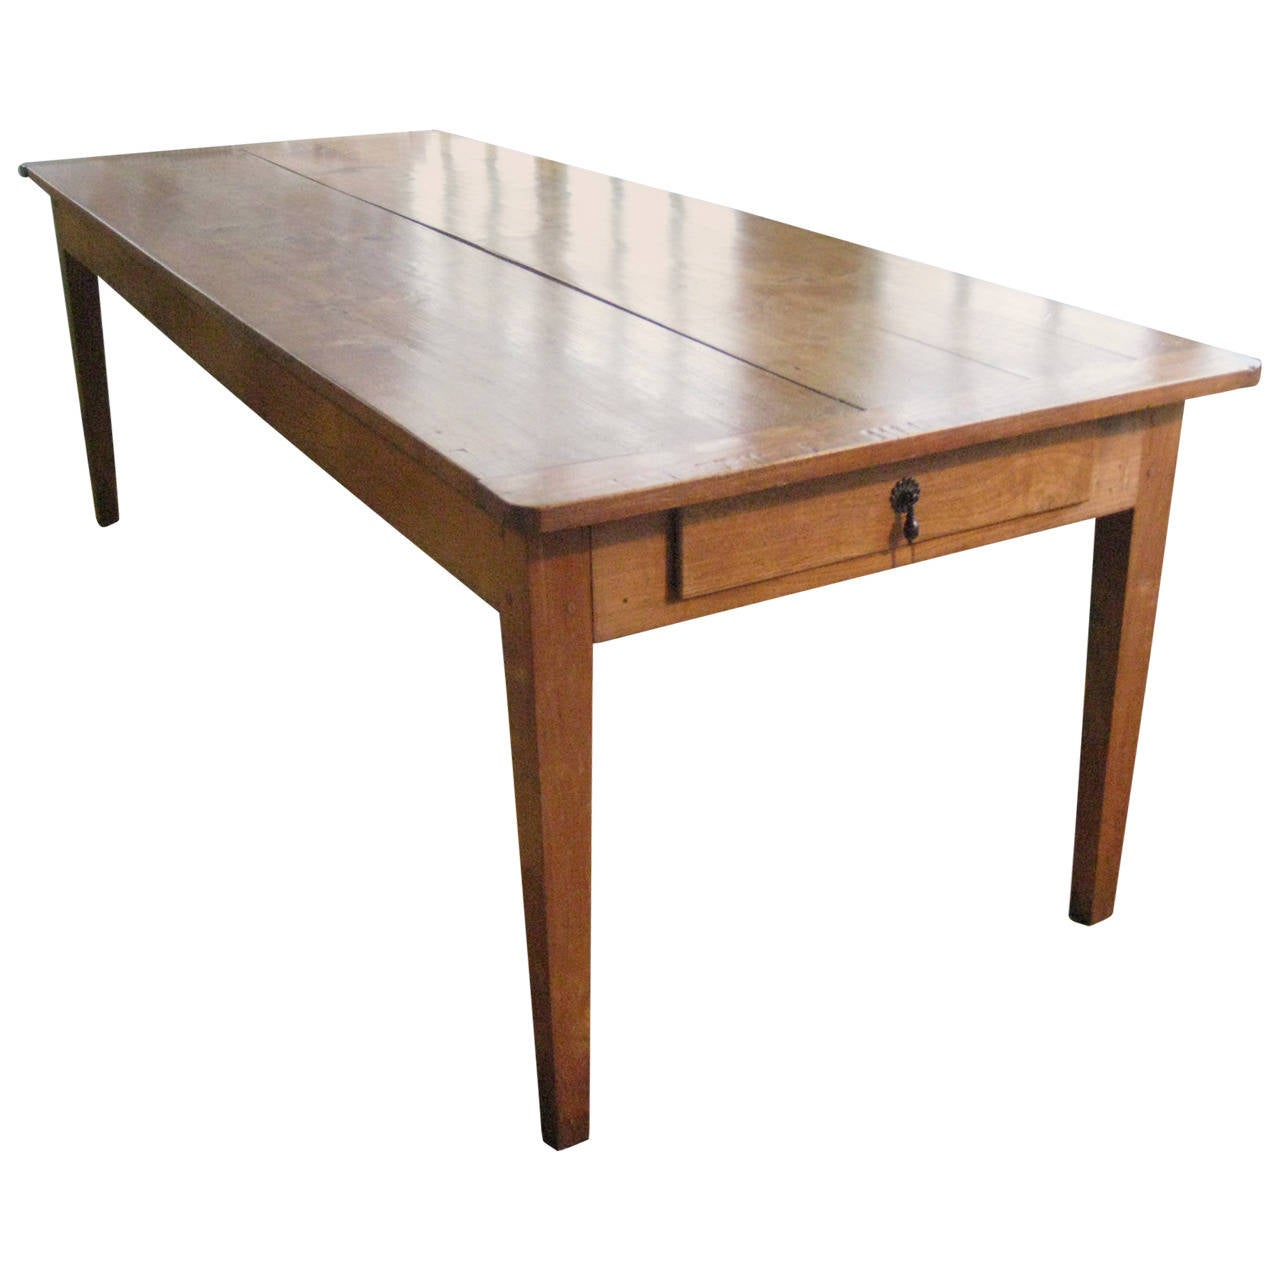 Farmhouse table for sale at 1stdibs for 1 1 table